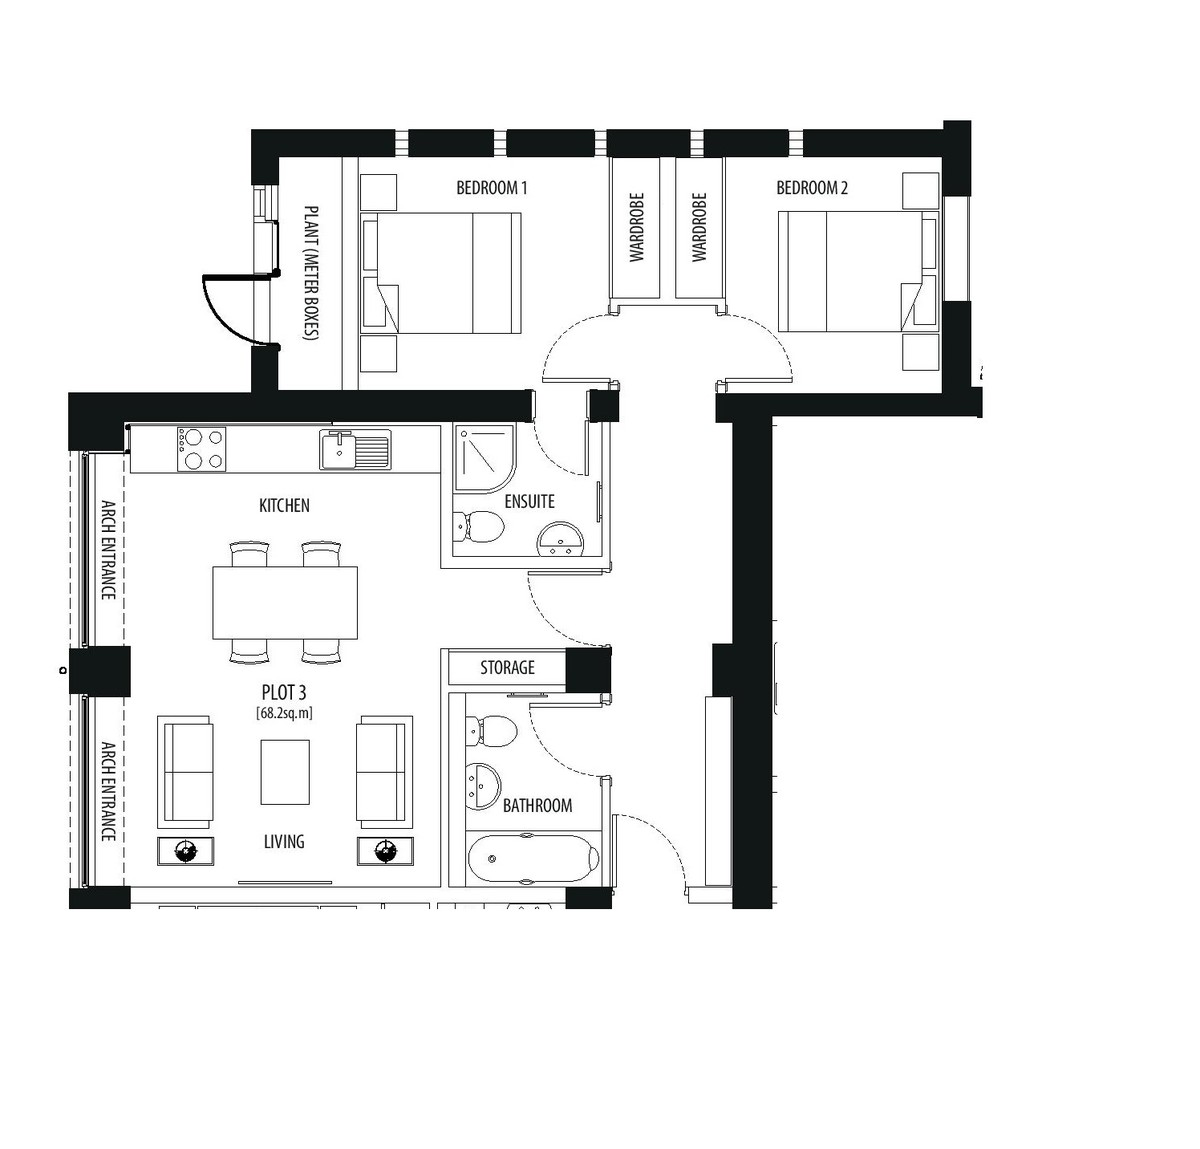 Coach House Mews, Beoley, Nr Ullenhall, B98 9ET Floorplan